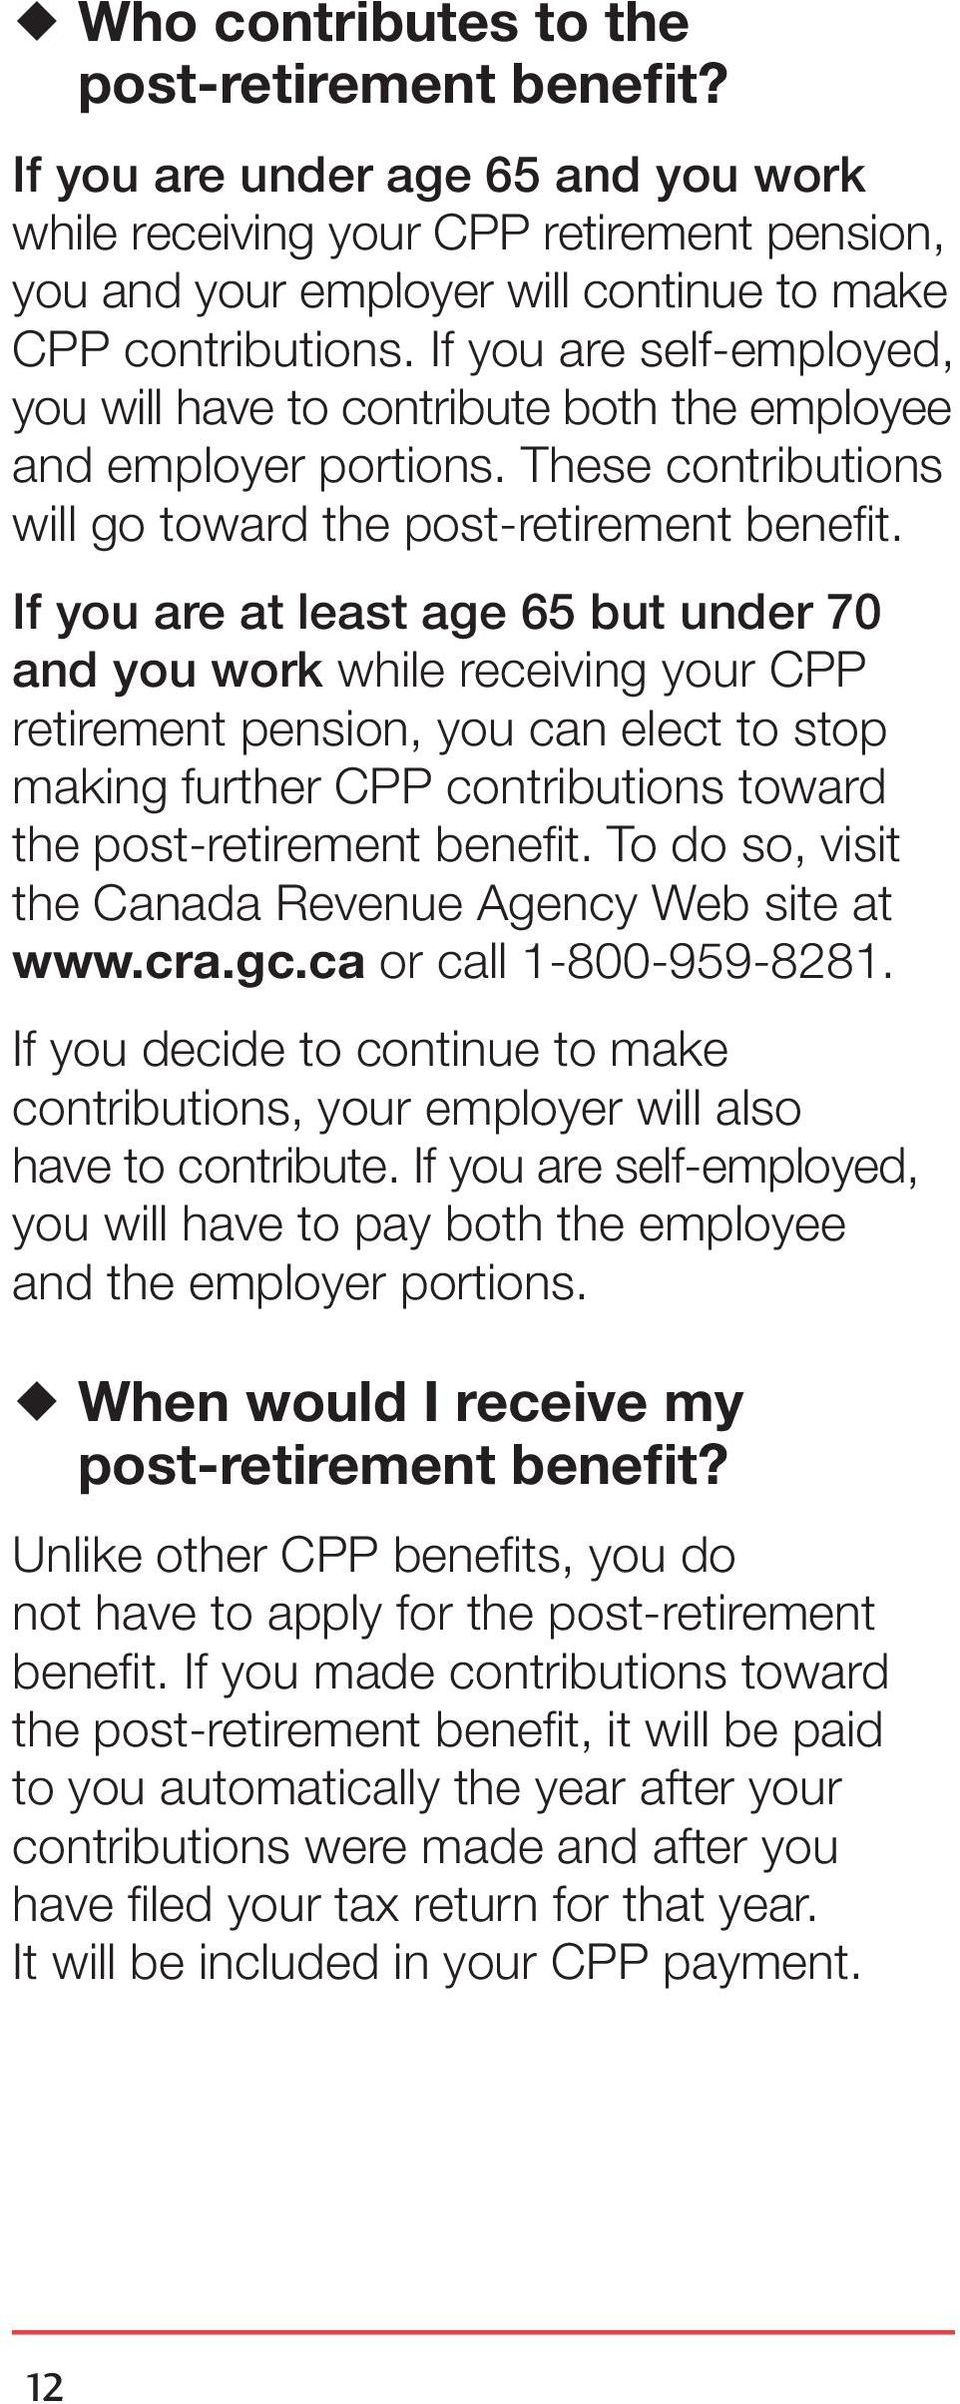 If you are at least age 65 but under 70 and you work while receiving your CPP retirement pension, you can elect to stop making further CPP contributions toward the post retirement benefit.